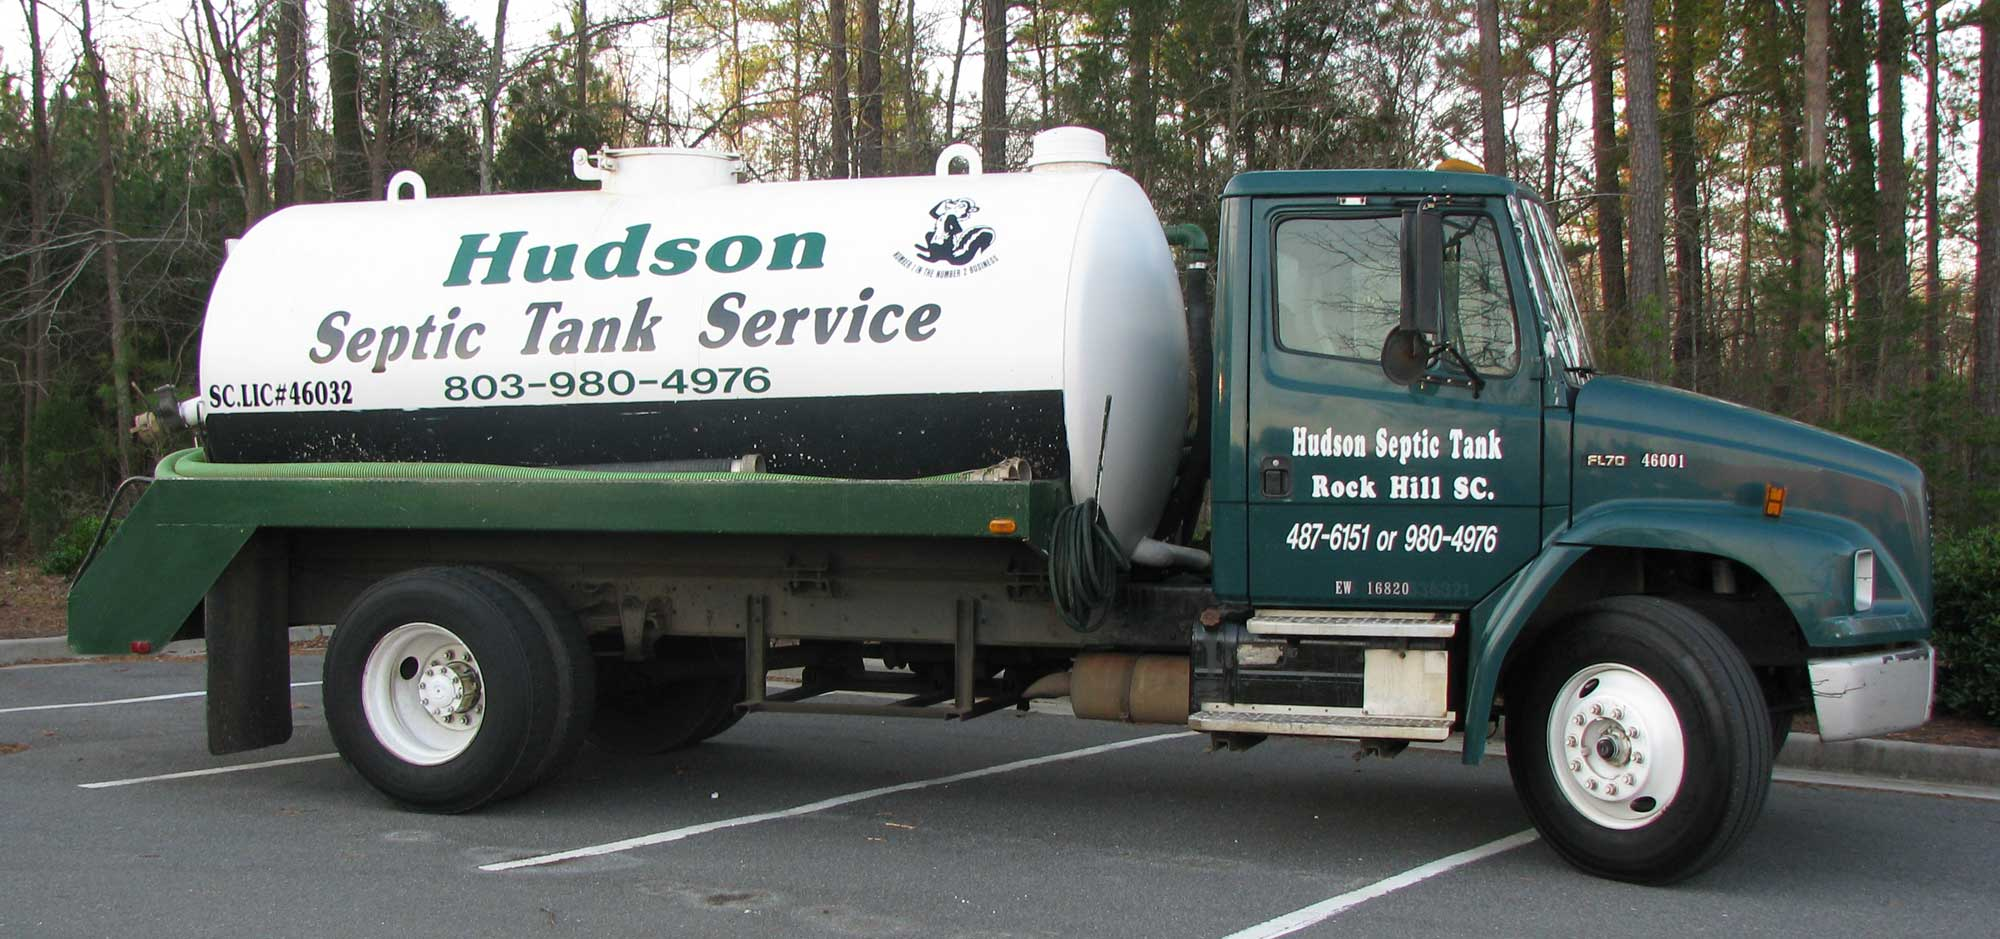 Septic Tank Cleaning & Pumping